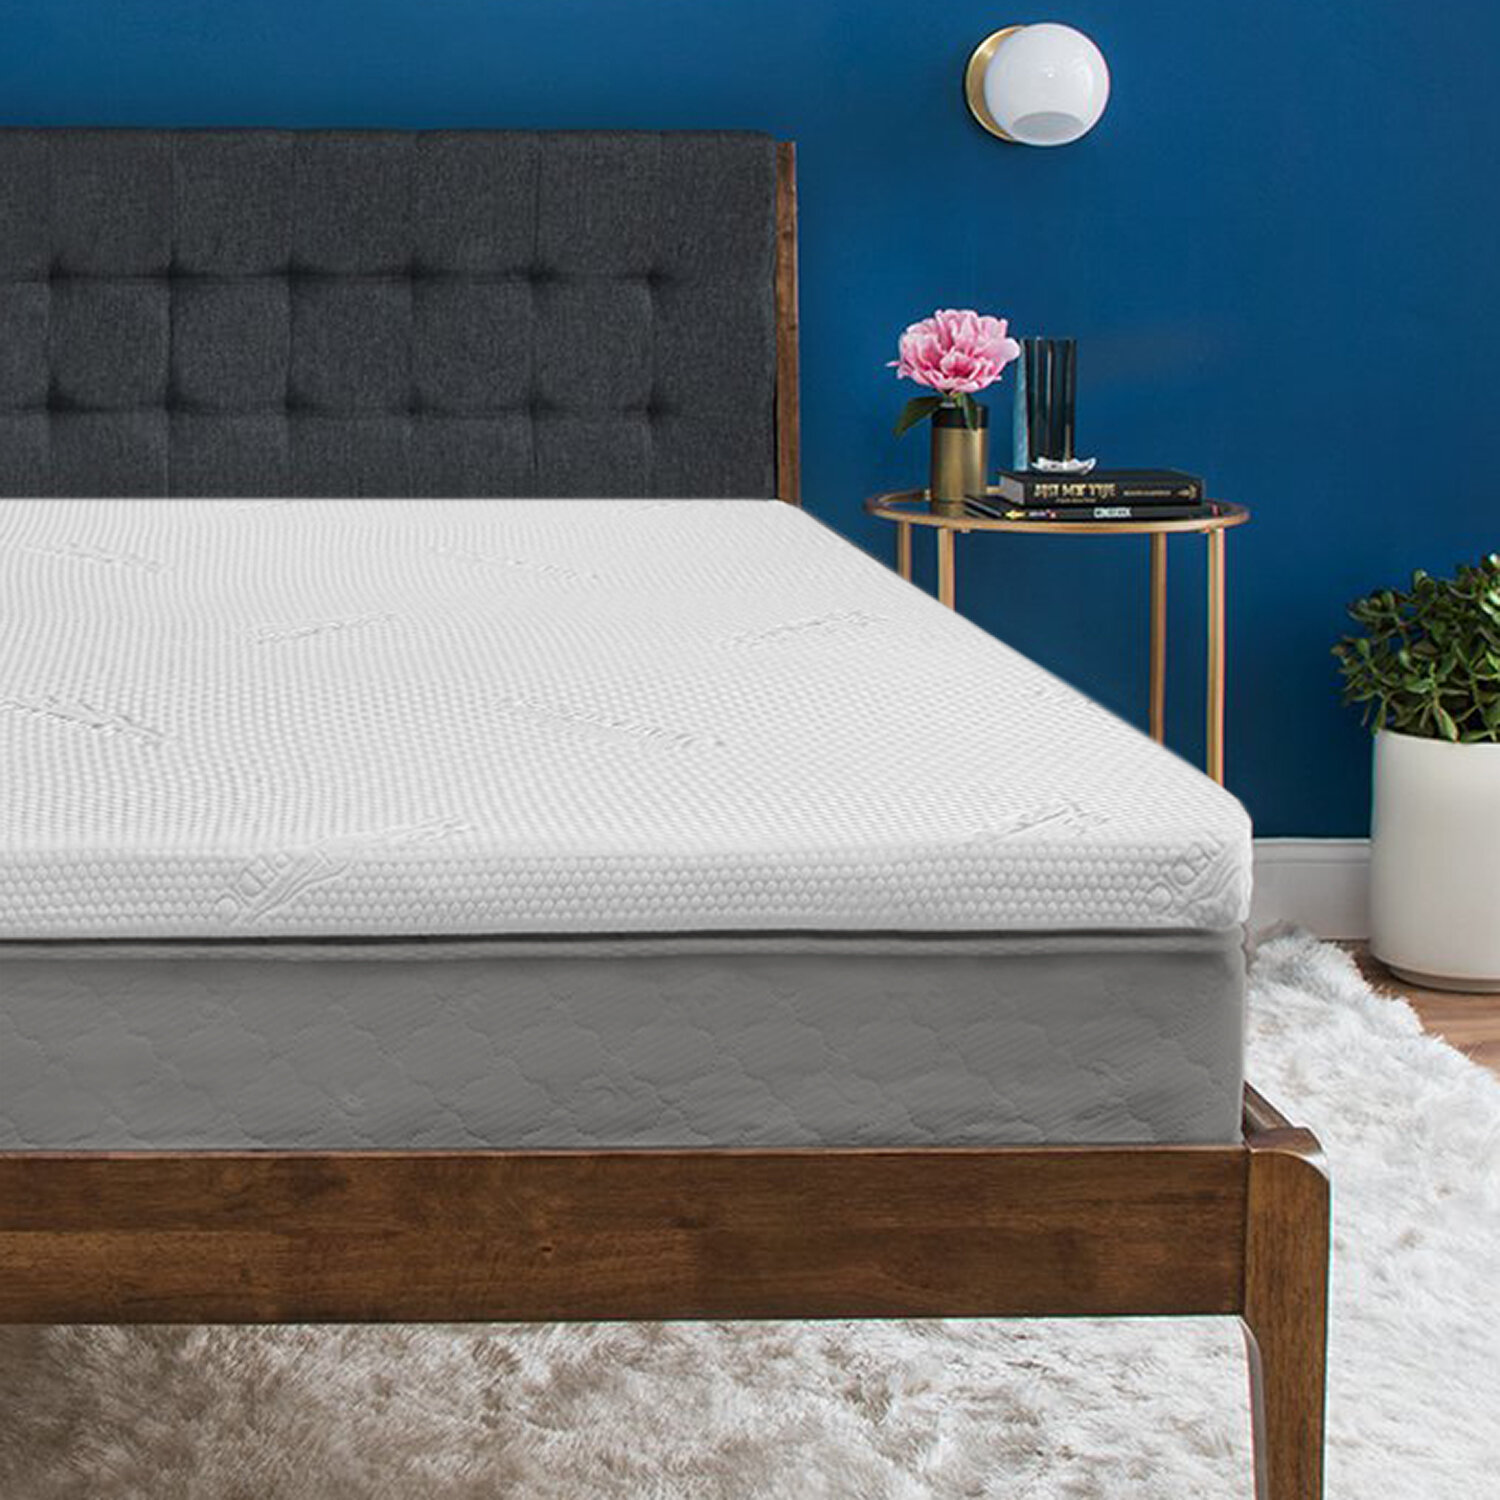 Mattress Pads & Toppers You'll Love in 2019 | Wayfair